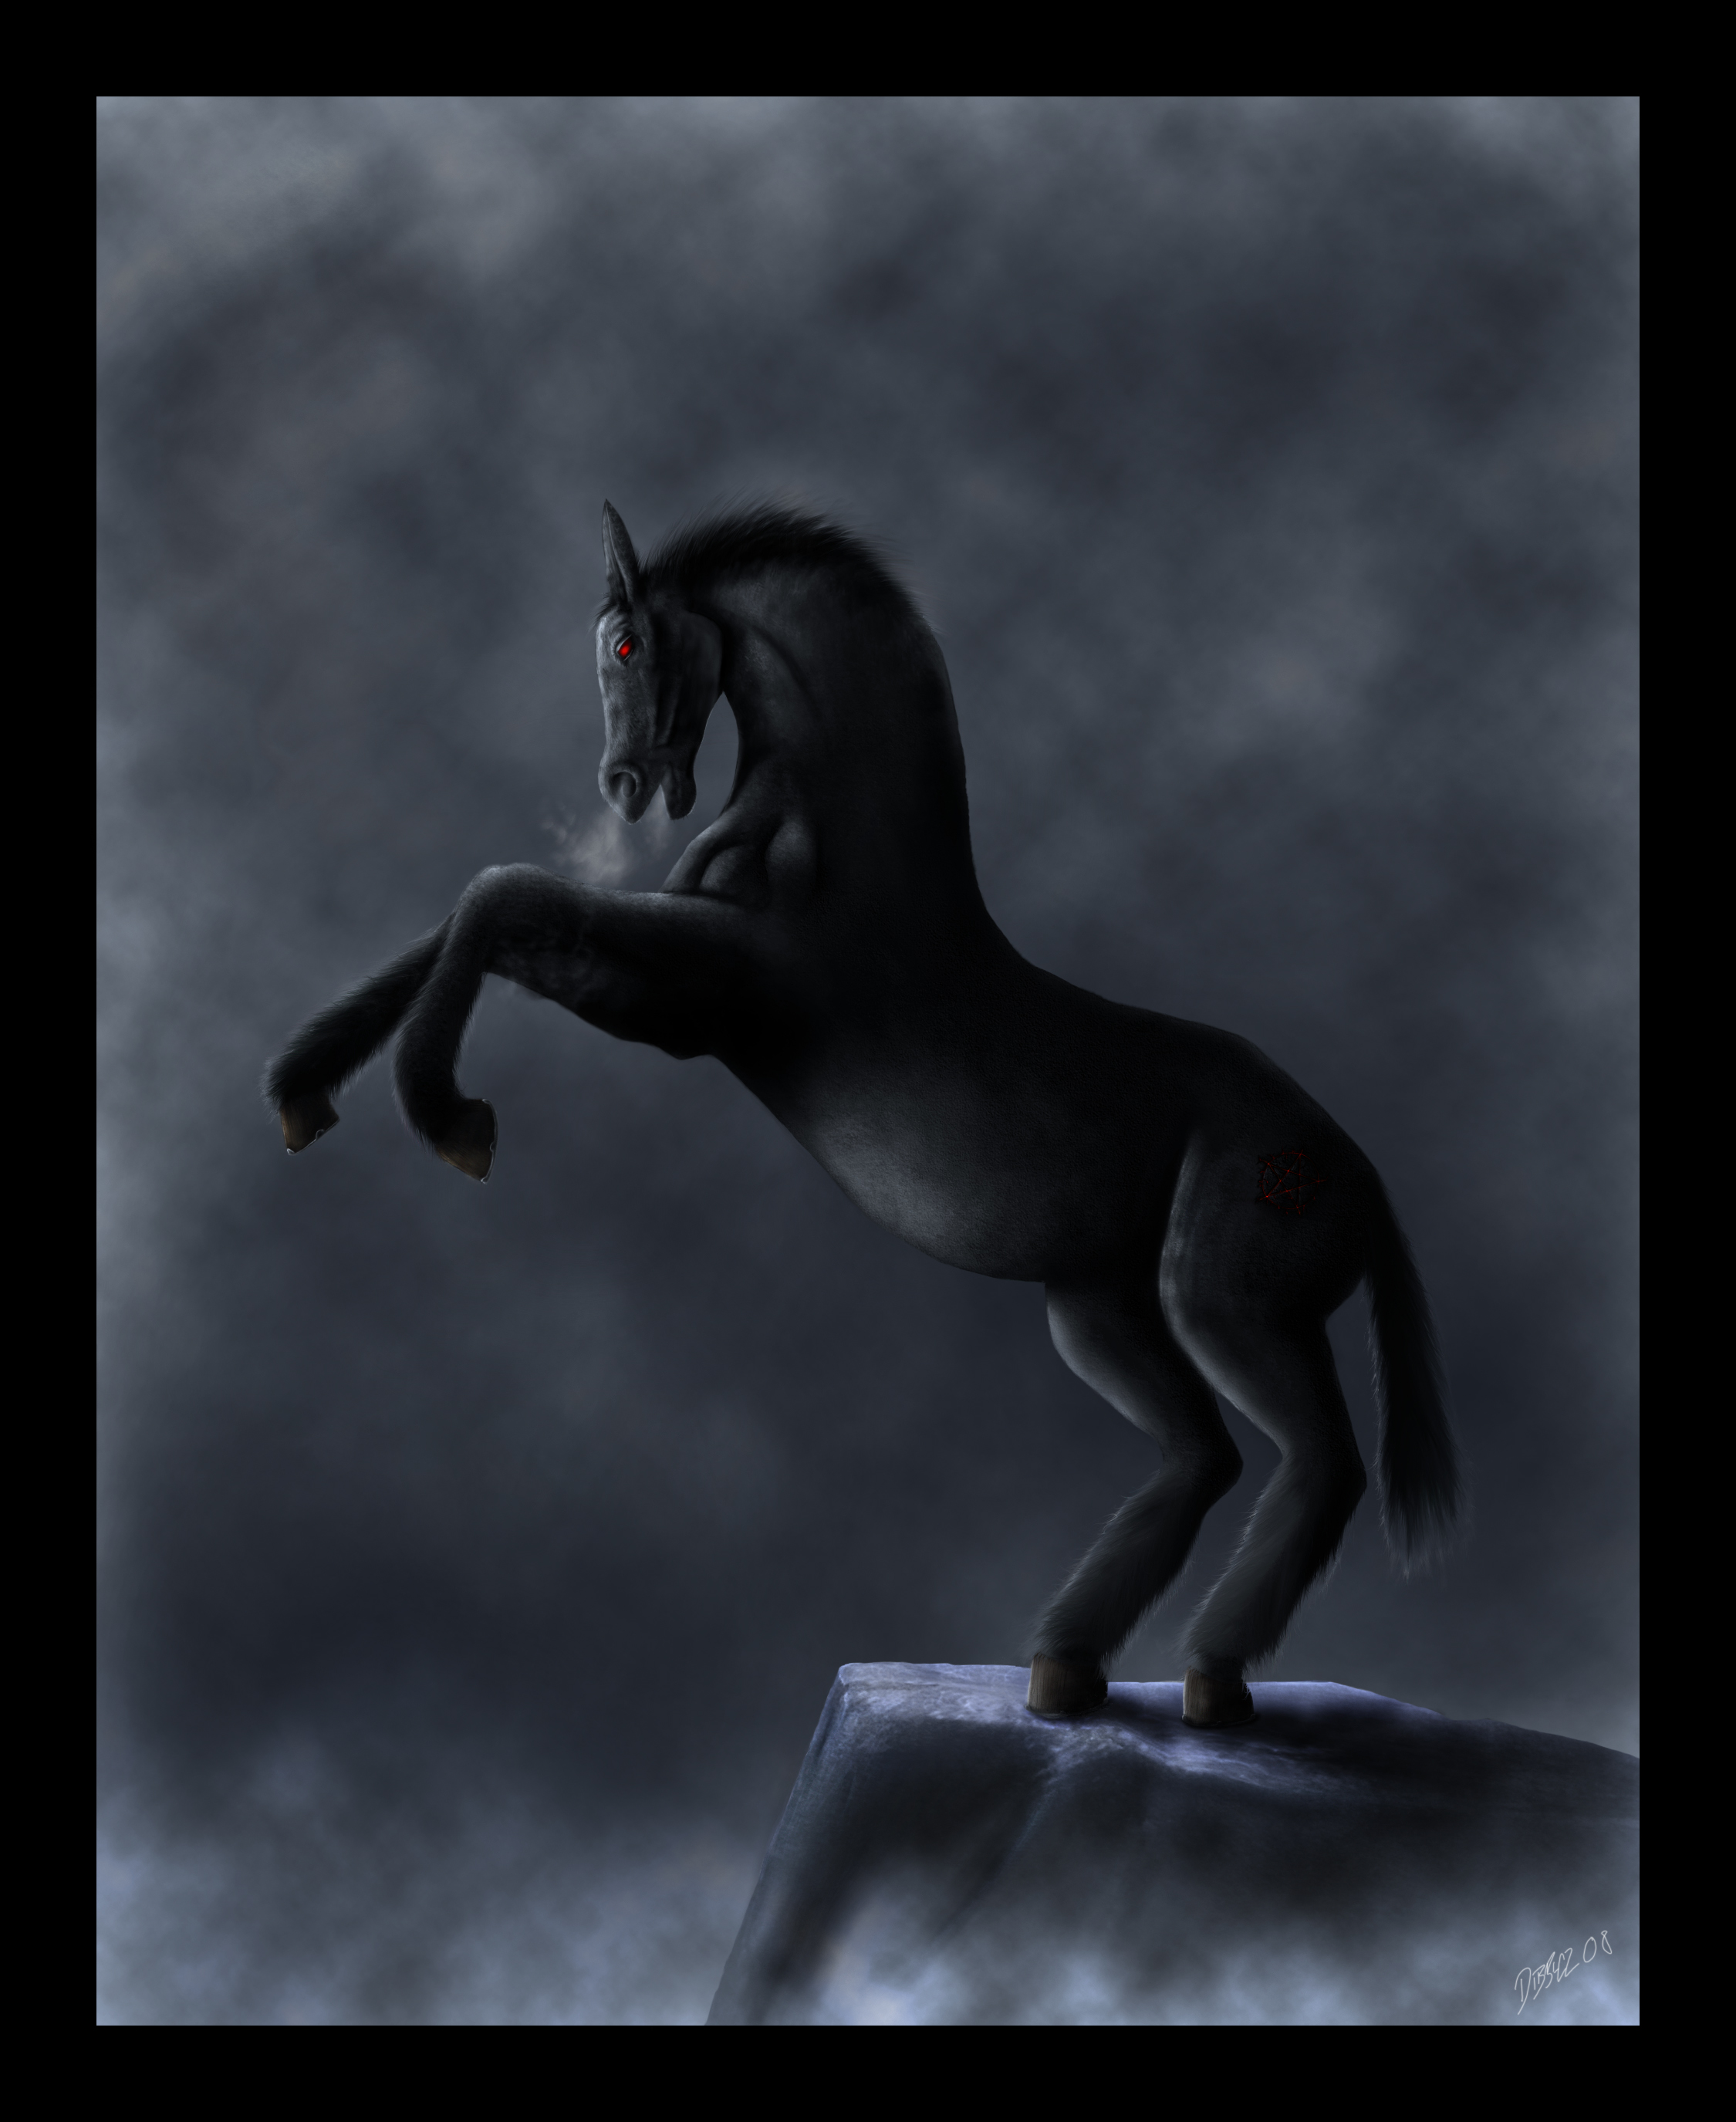 https://fc79.deviantart.com/fs34/f/2008/290/3/9/Shadow_Horse_by_DiBBiEZ.jpg